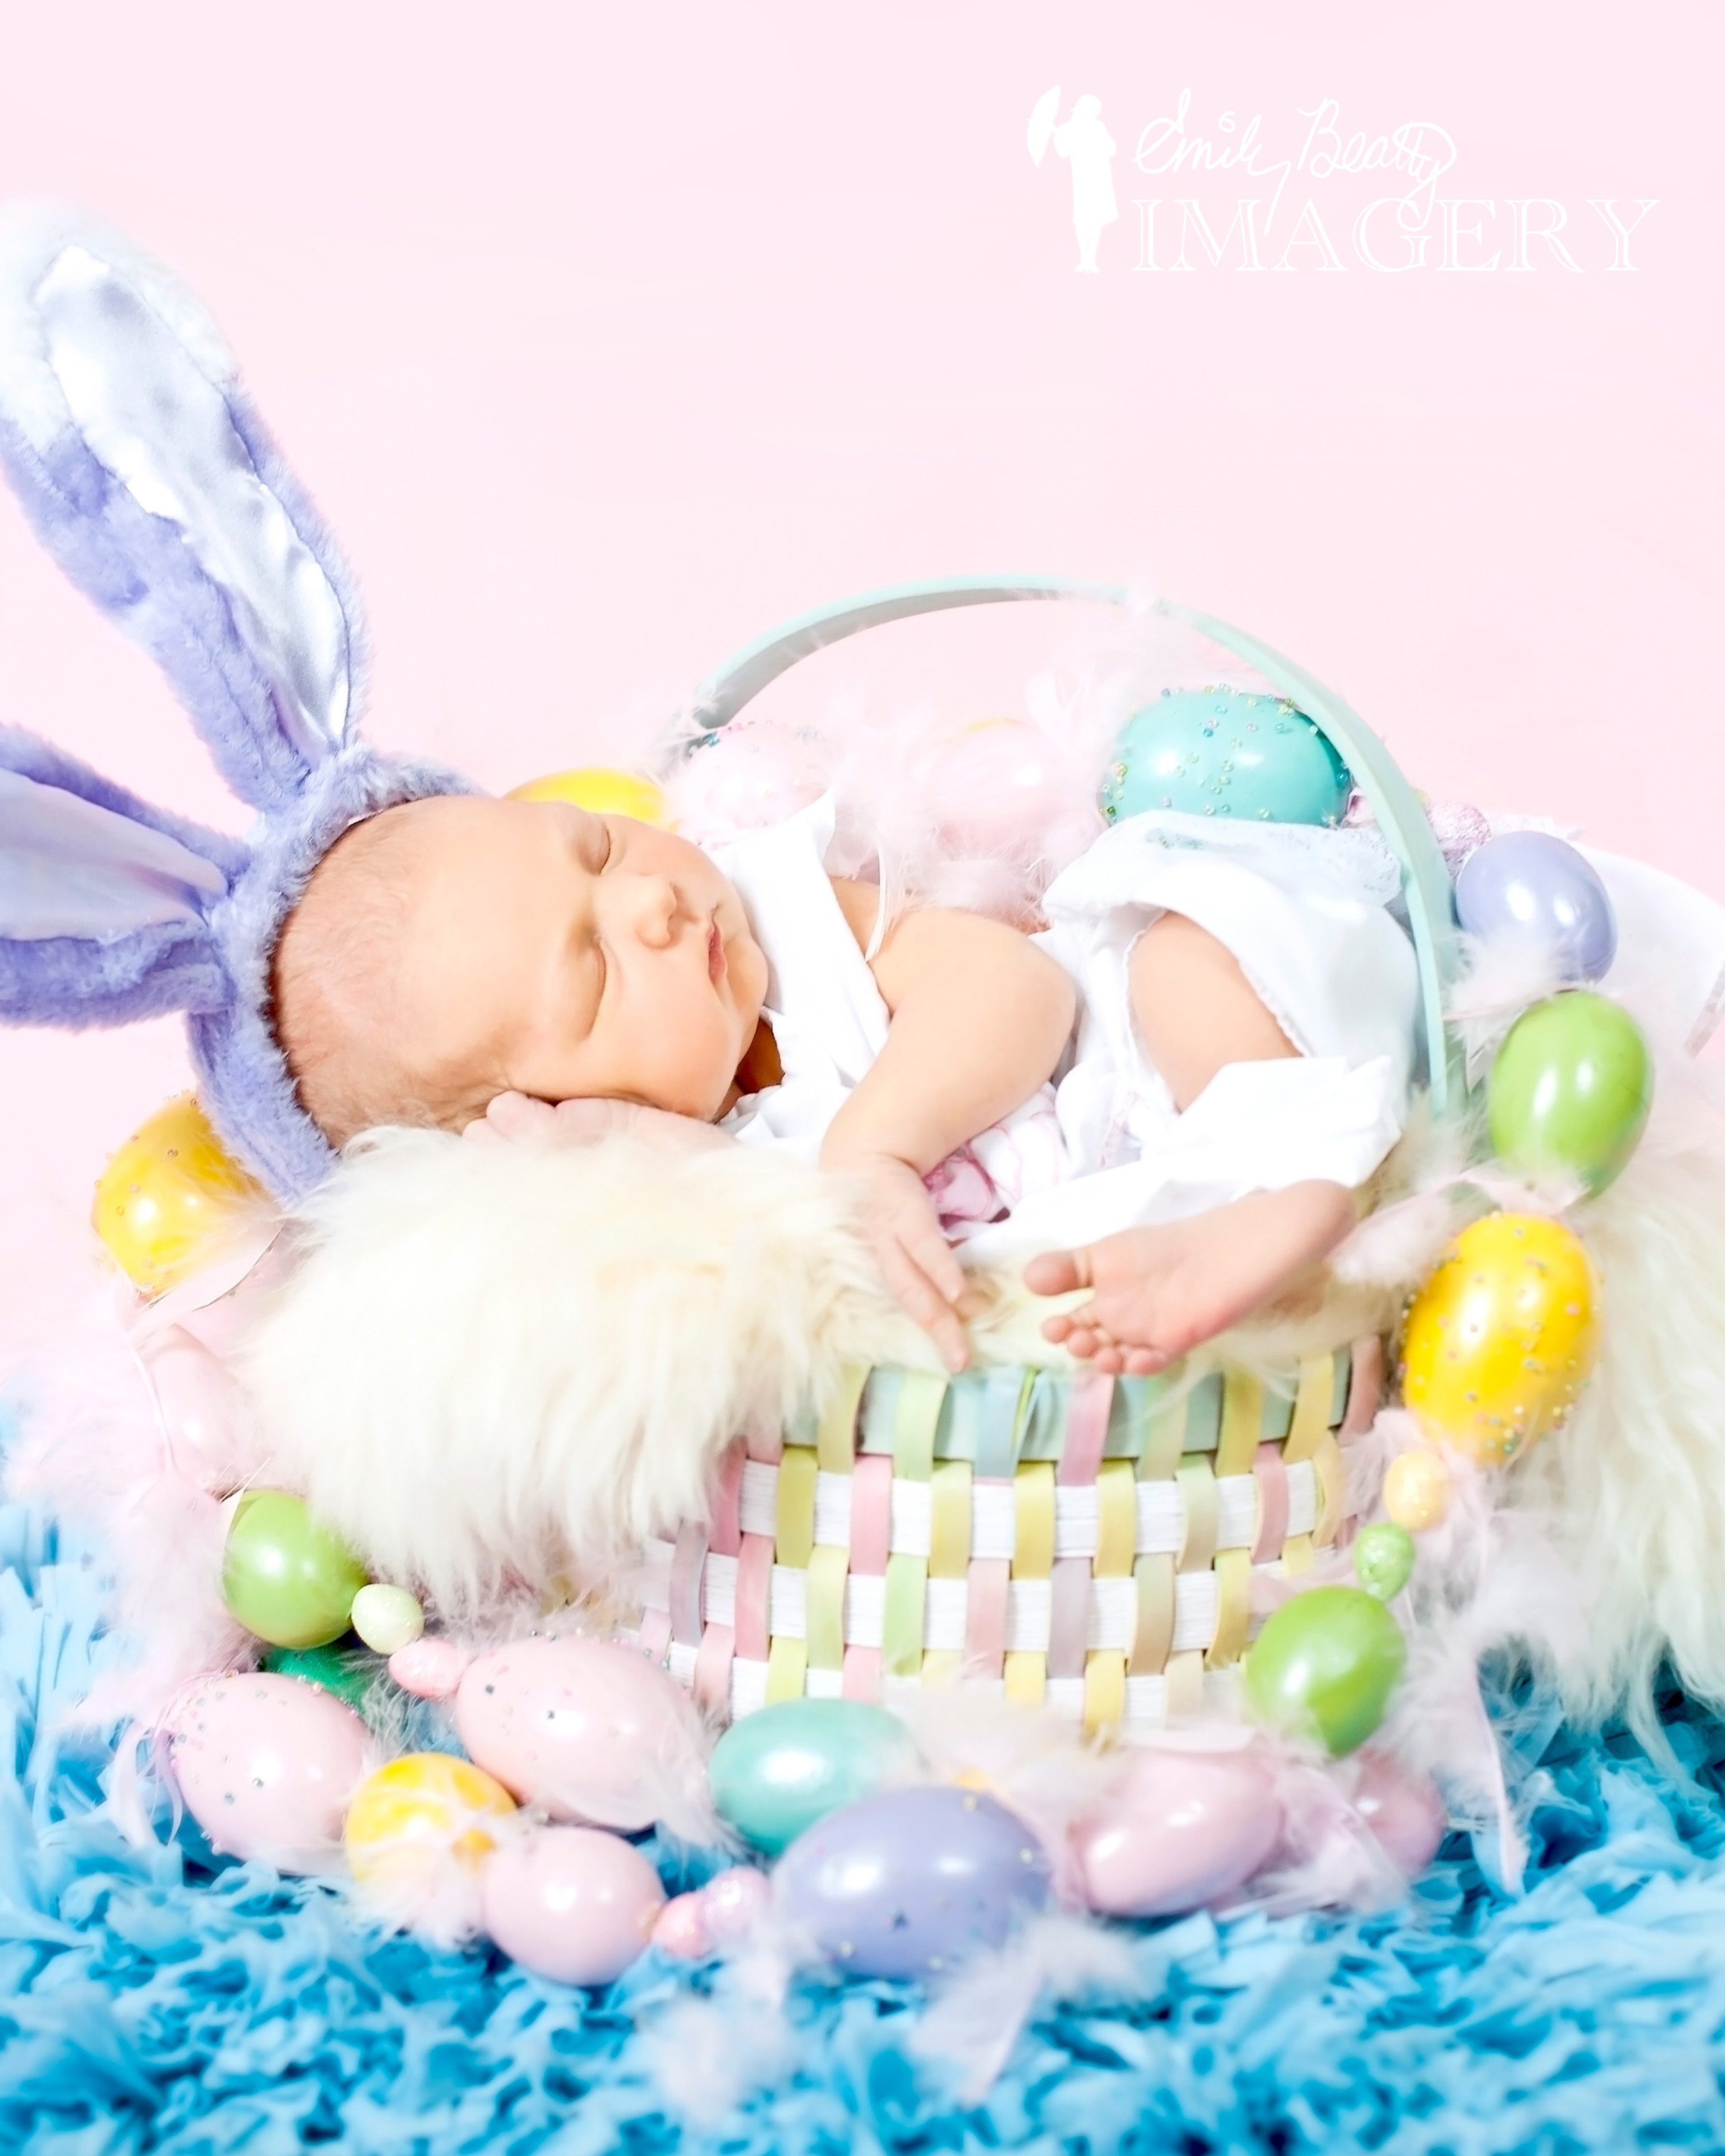 Emily_Beatty_spring_baby_animals